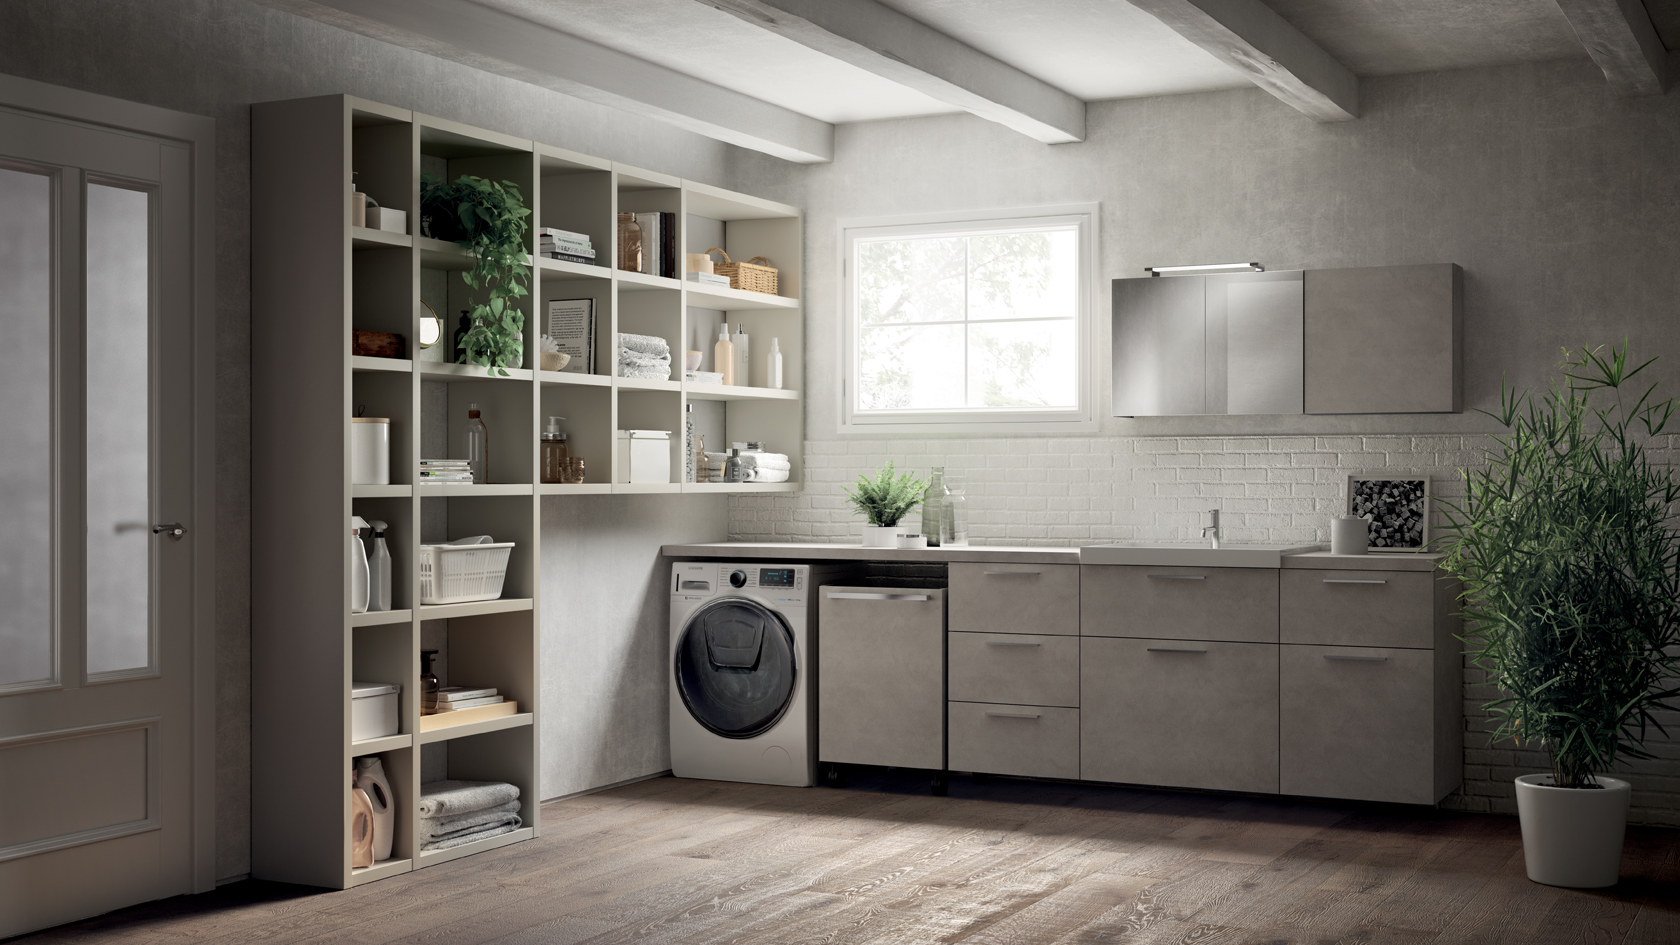 Laundry Space - Scavolini